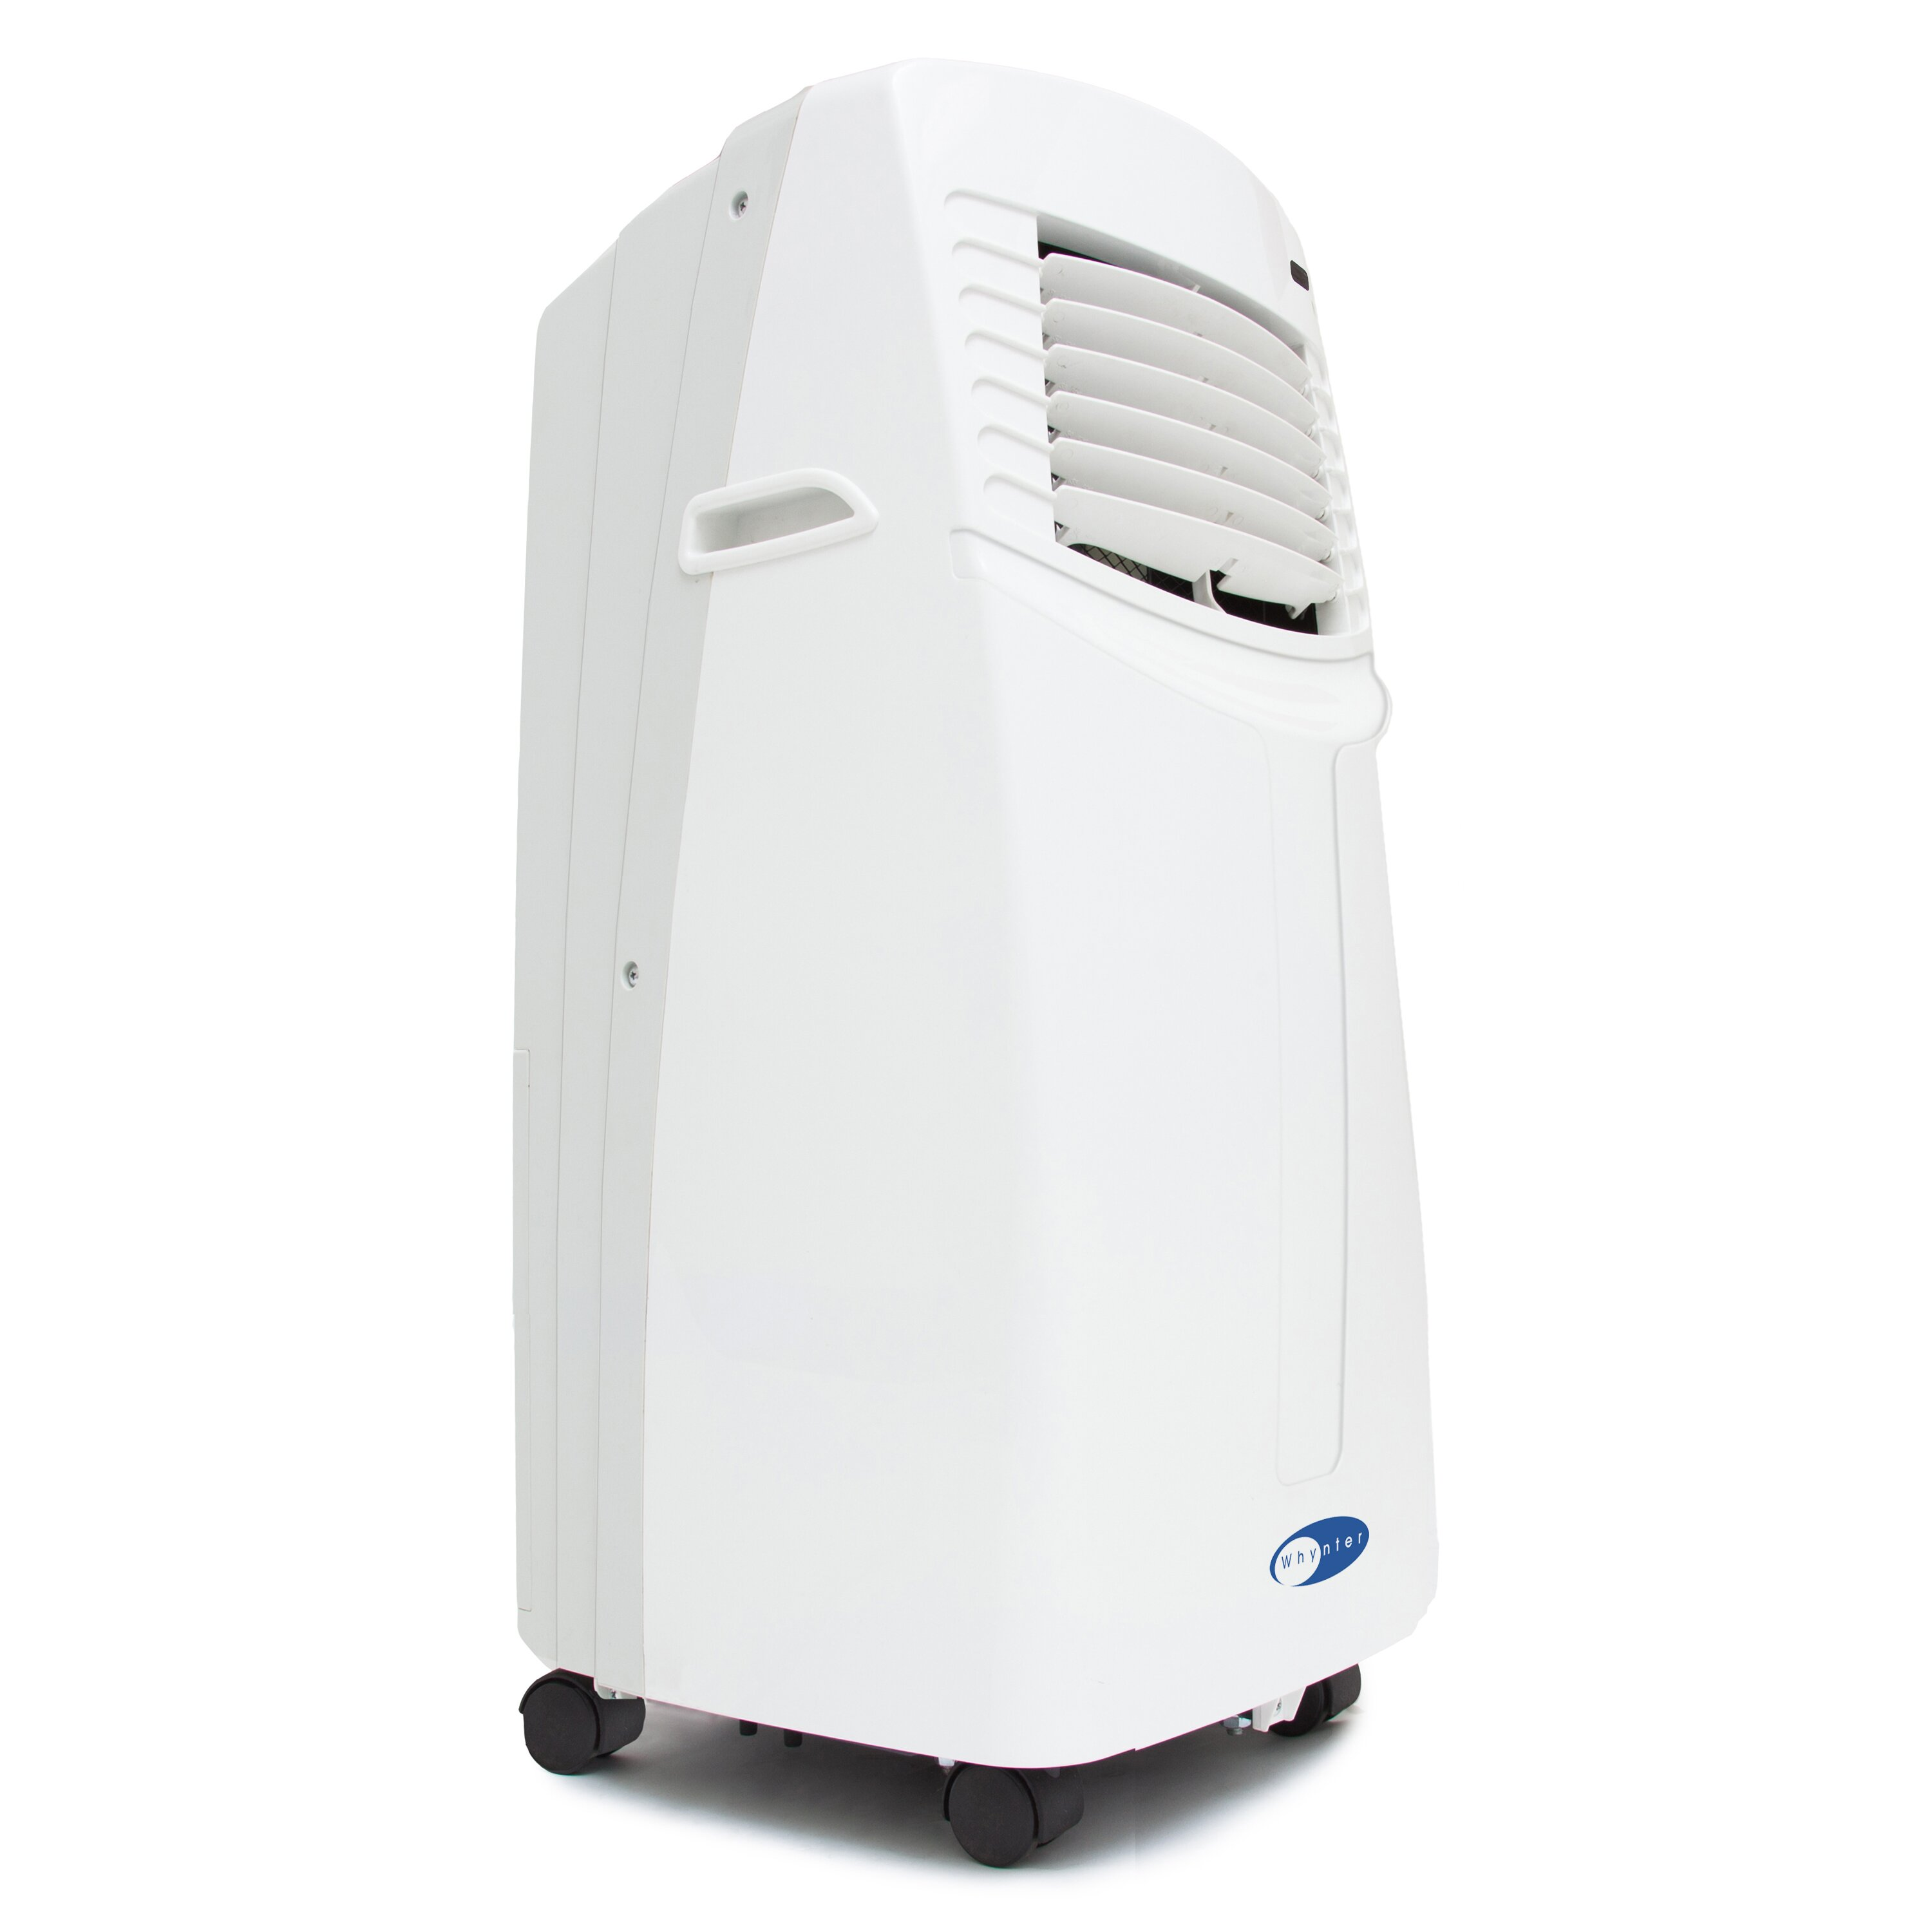 Whynter Eco friendly 8 000 BTU Portable Air Conditioner with Remote  #1F4D91